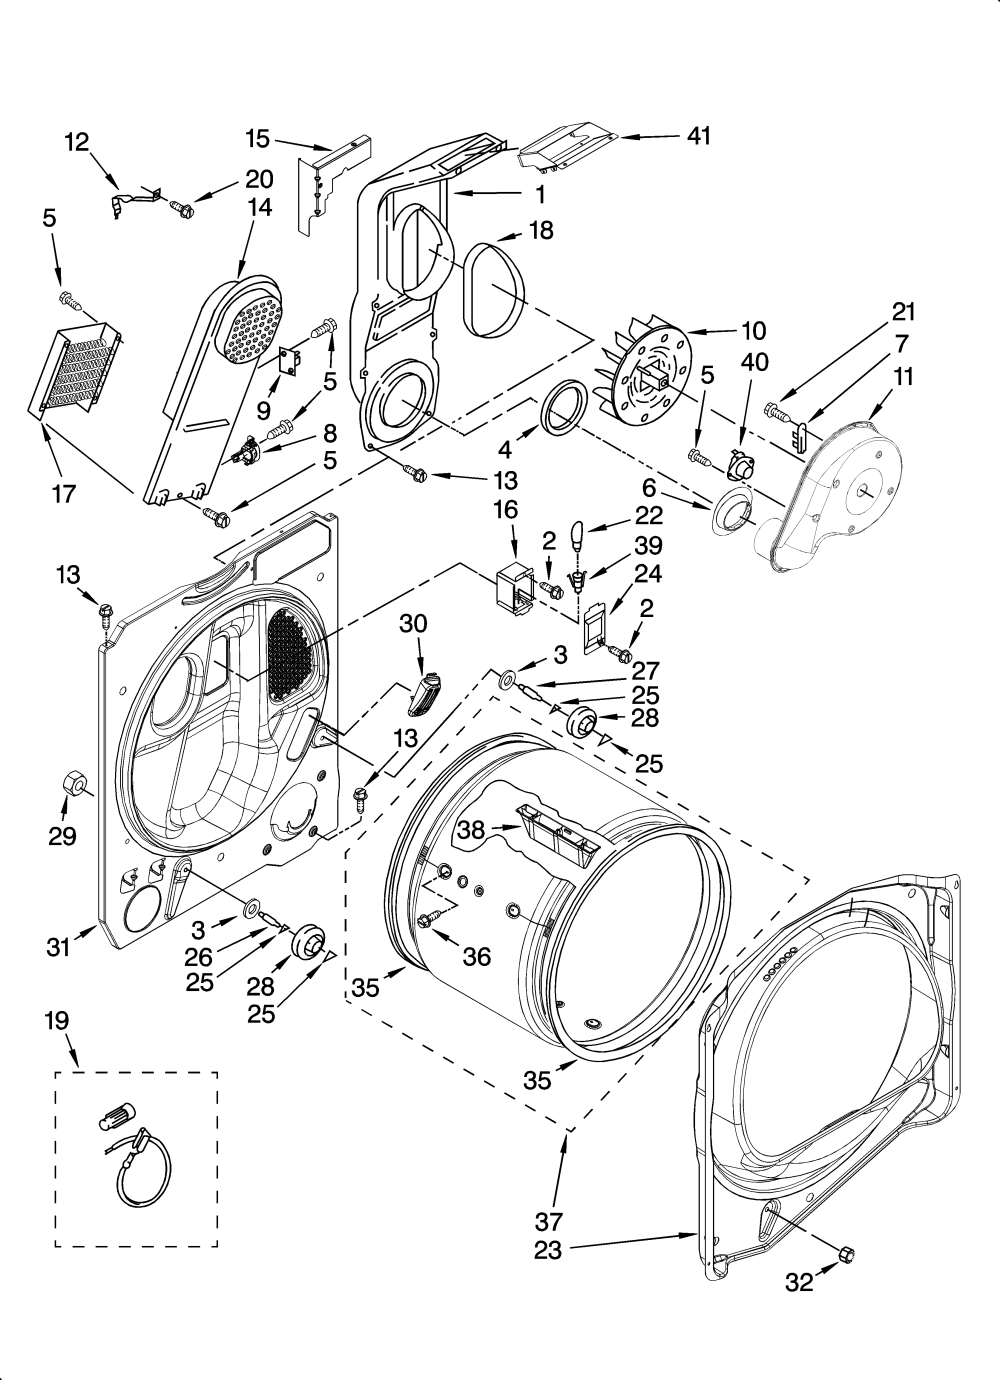 medium resolution of whirlpool wed6200sw1 bulkhead parts optional parts not included diagram